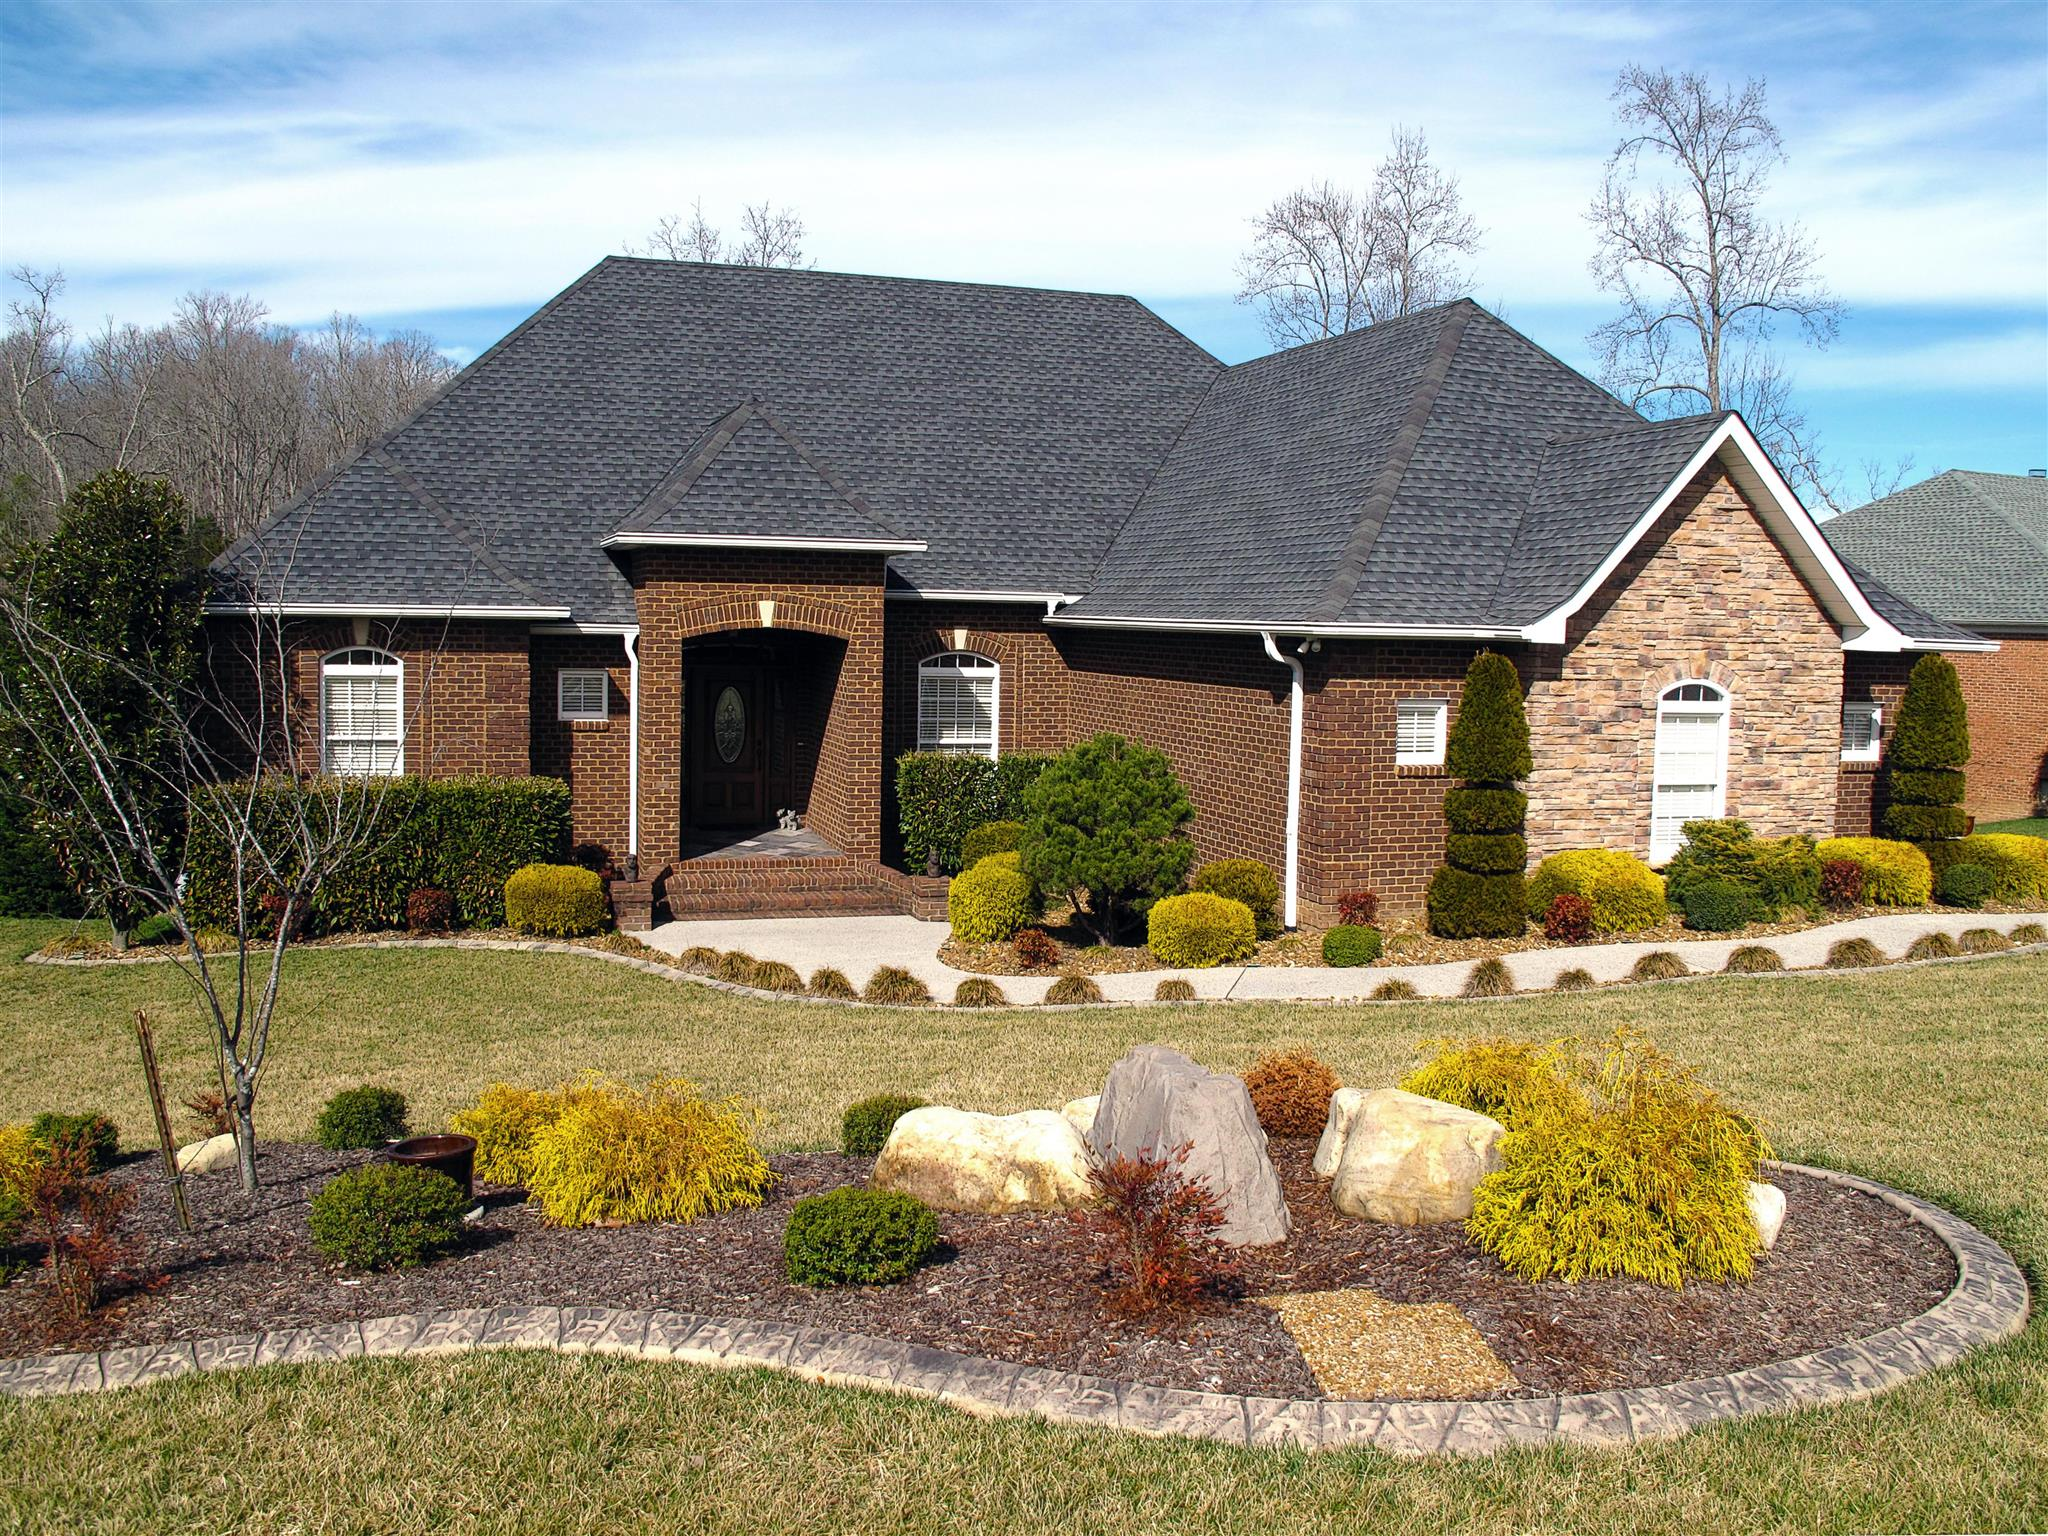 304 Setters Ln W, Tullahoma, Tennessee